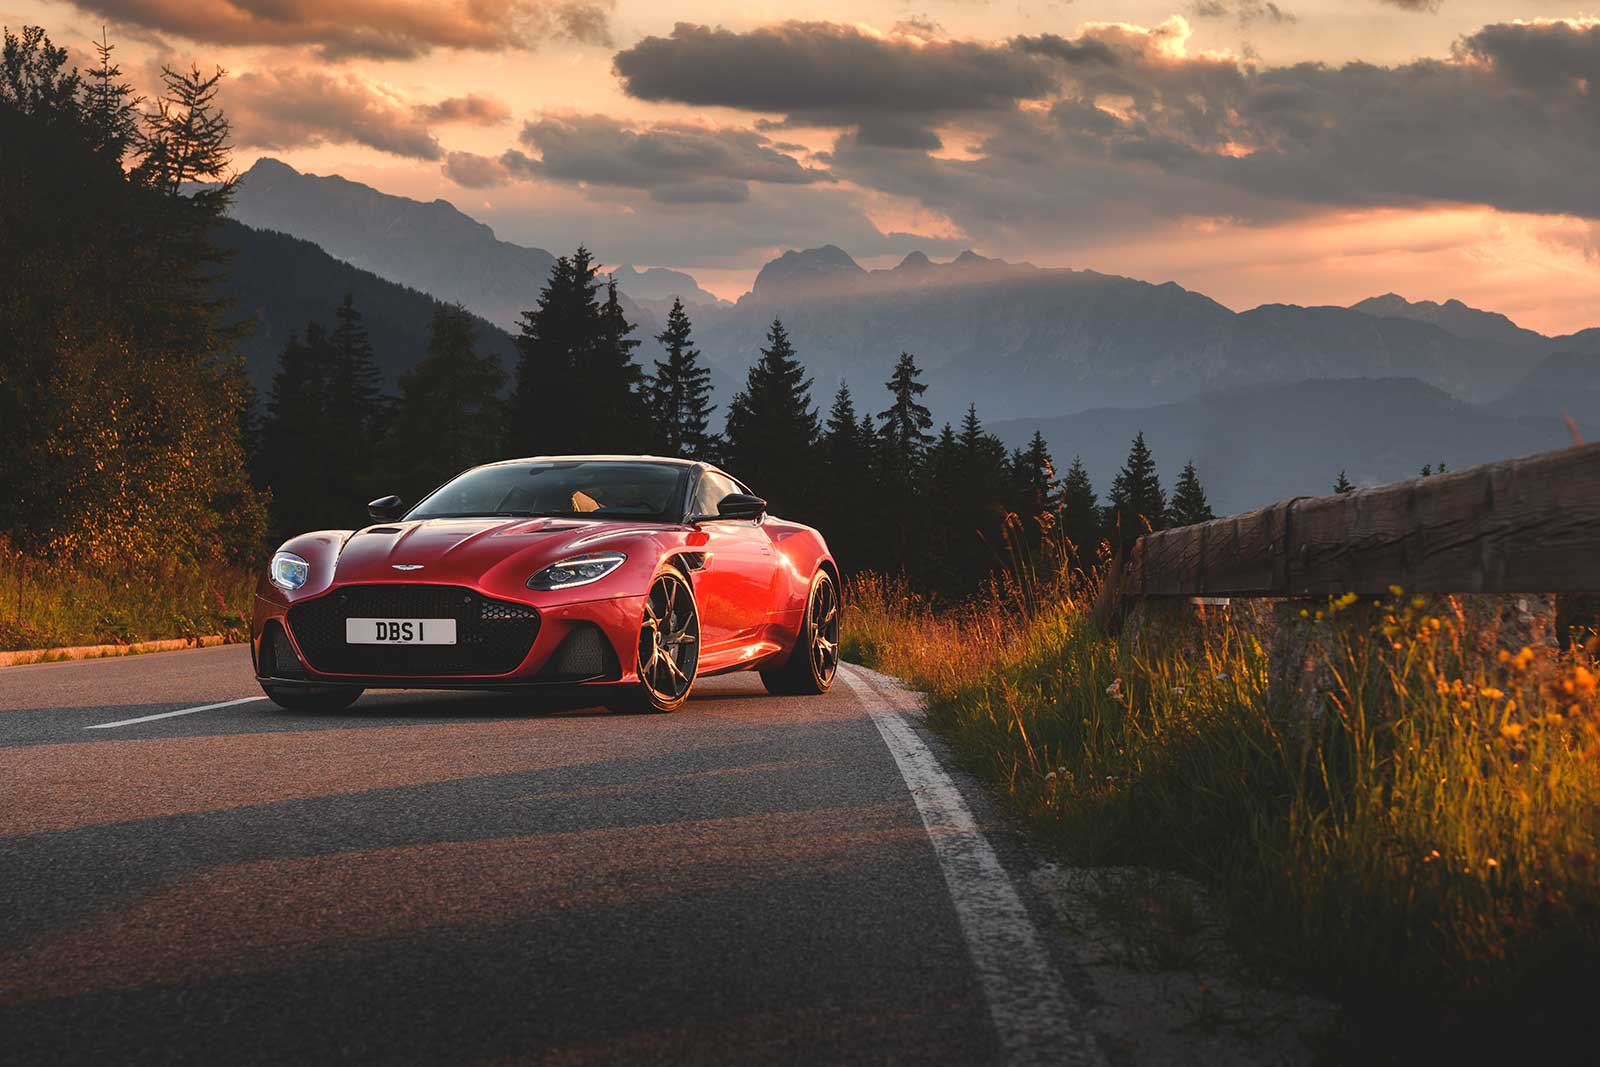 11 Things To Know About The 2019 Aston Martin Dbs Superleggera